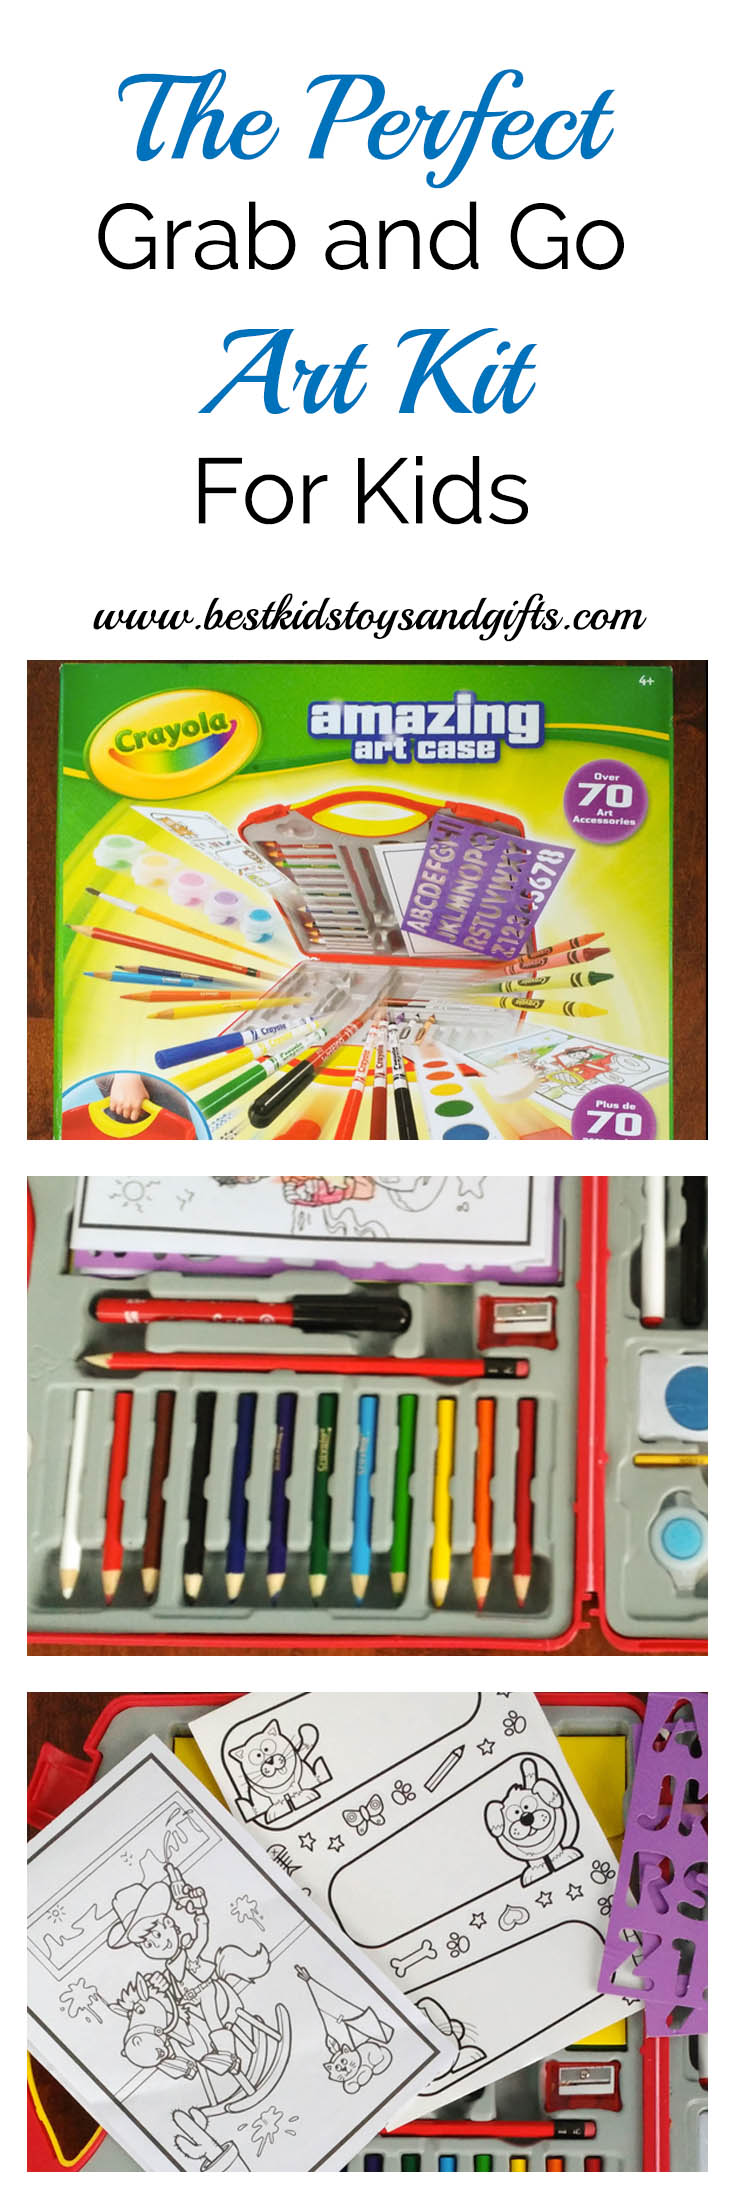 Best Crayola Toys For Kids : Crayola amazing art case the perfect grab and go kit